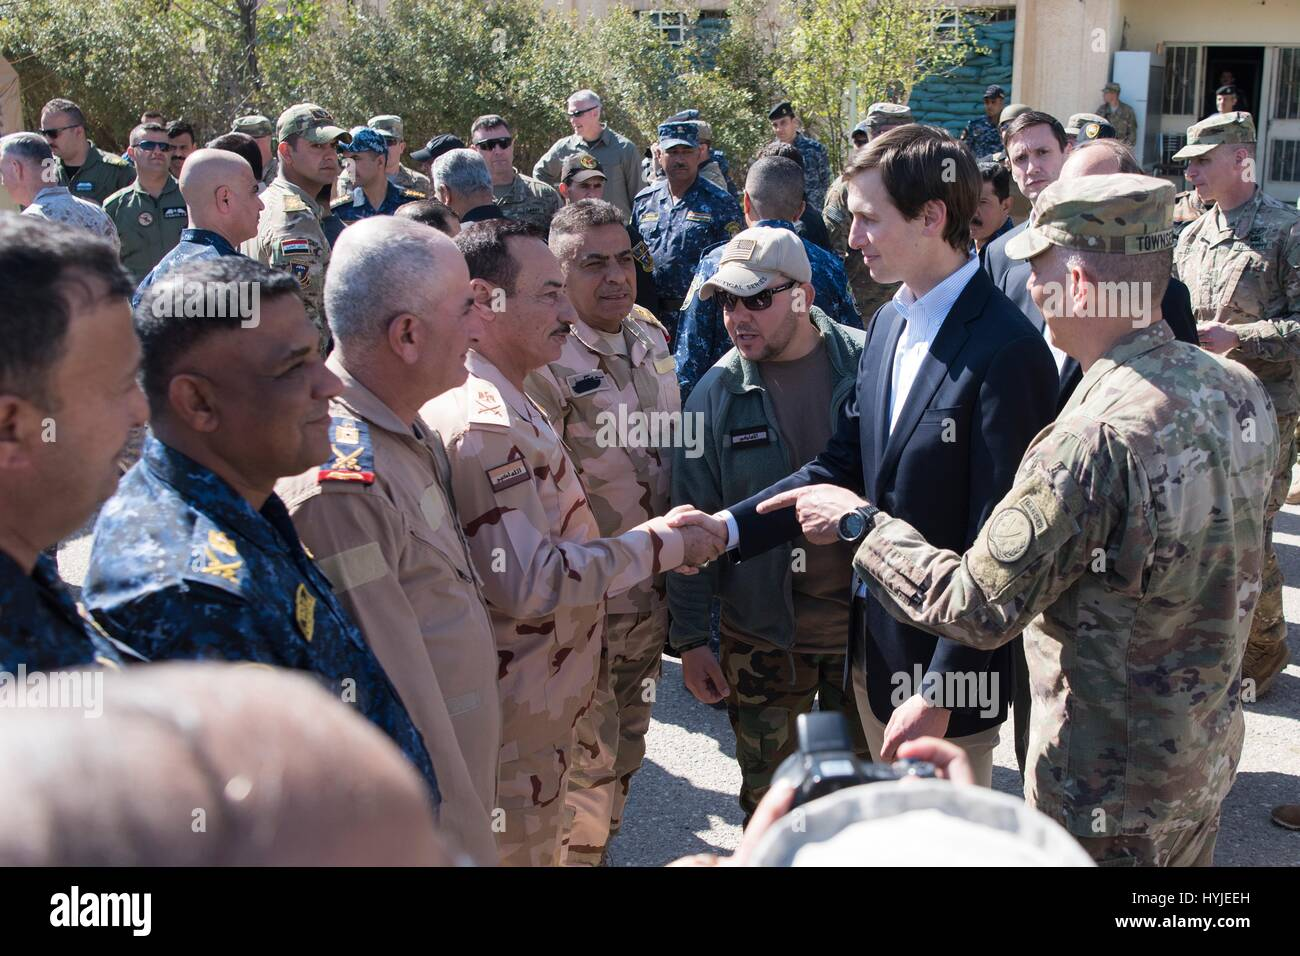 Qayyarah West, Iraq. 4th Apr, 2017. Jared Kushner, Senior Advisor and son-in-law to President Trump, center, and - Stock Image